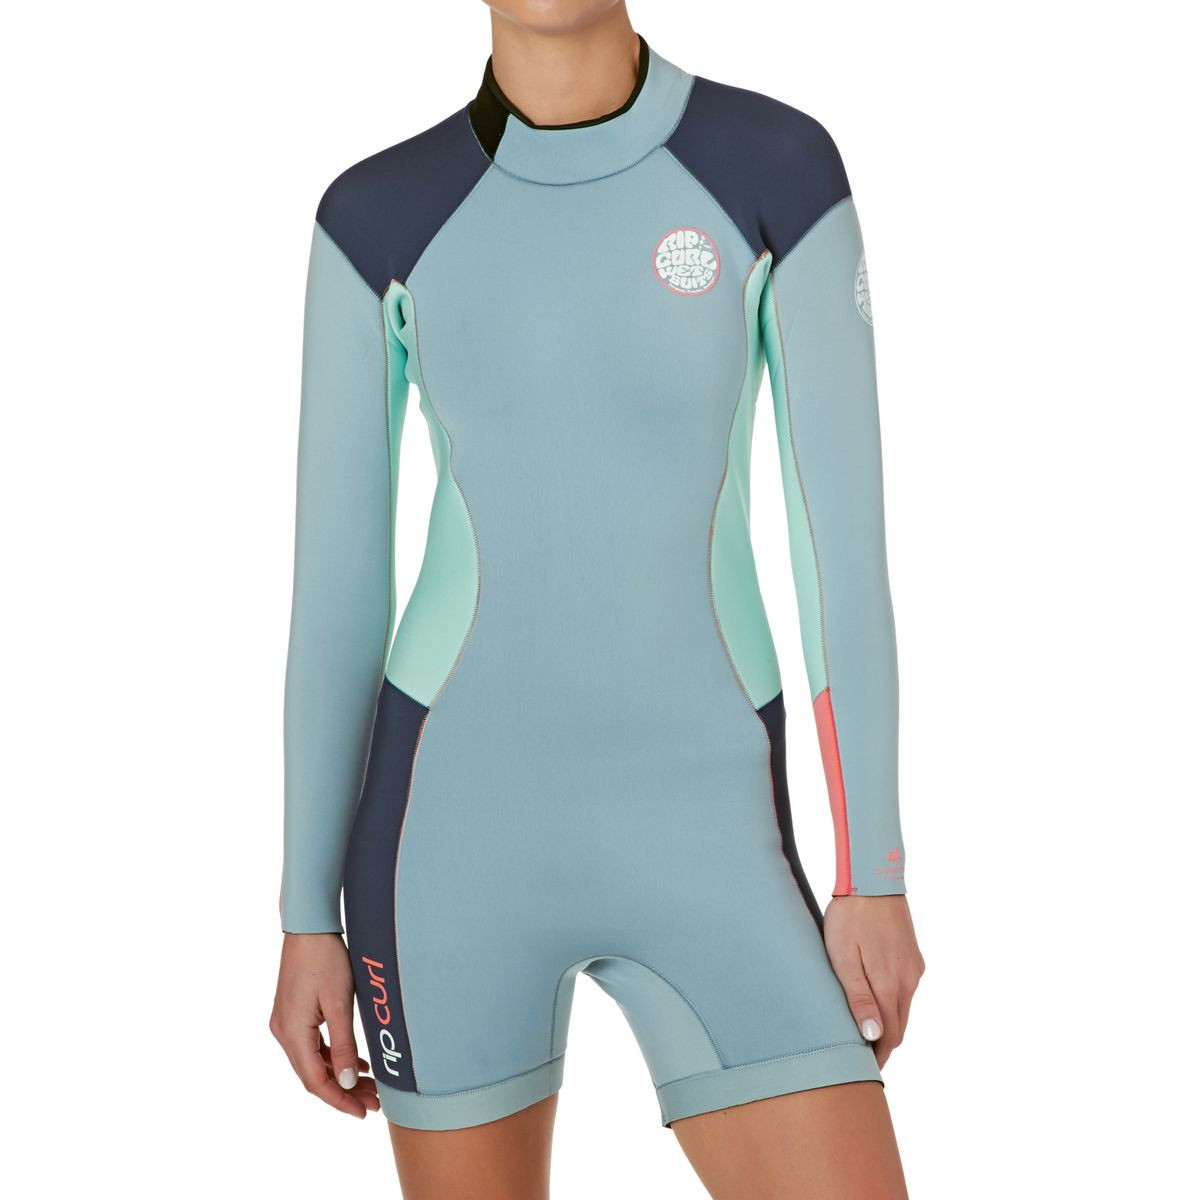 Rip Curl Womens Dawn Patrol 2mm Back Zip Long Sleeve Shorty Wetsuit - Blue Ice